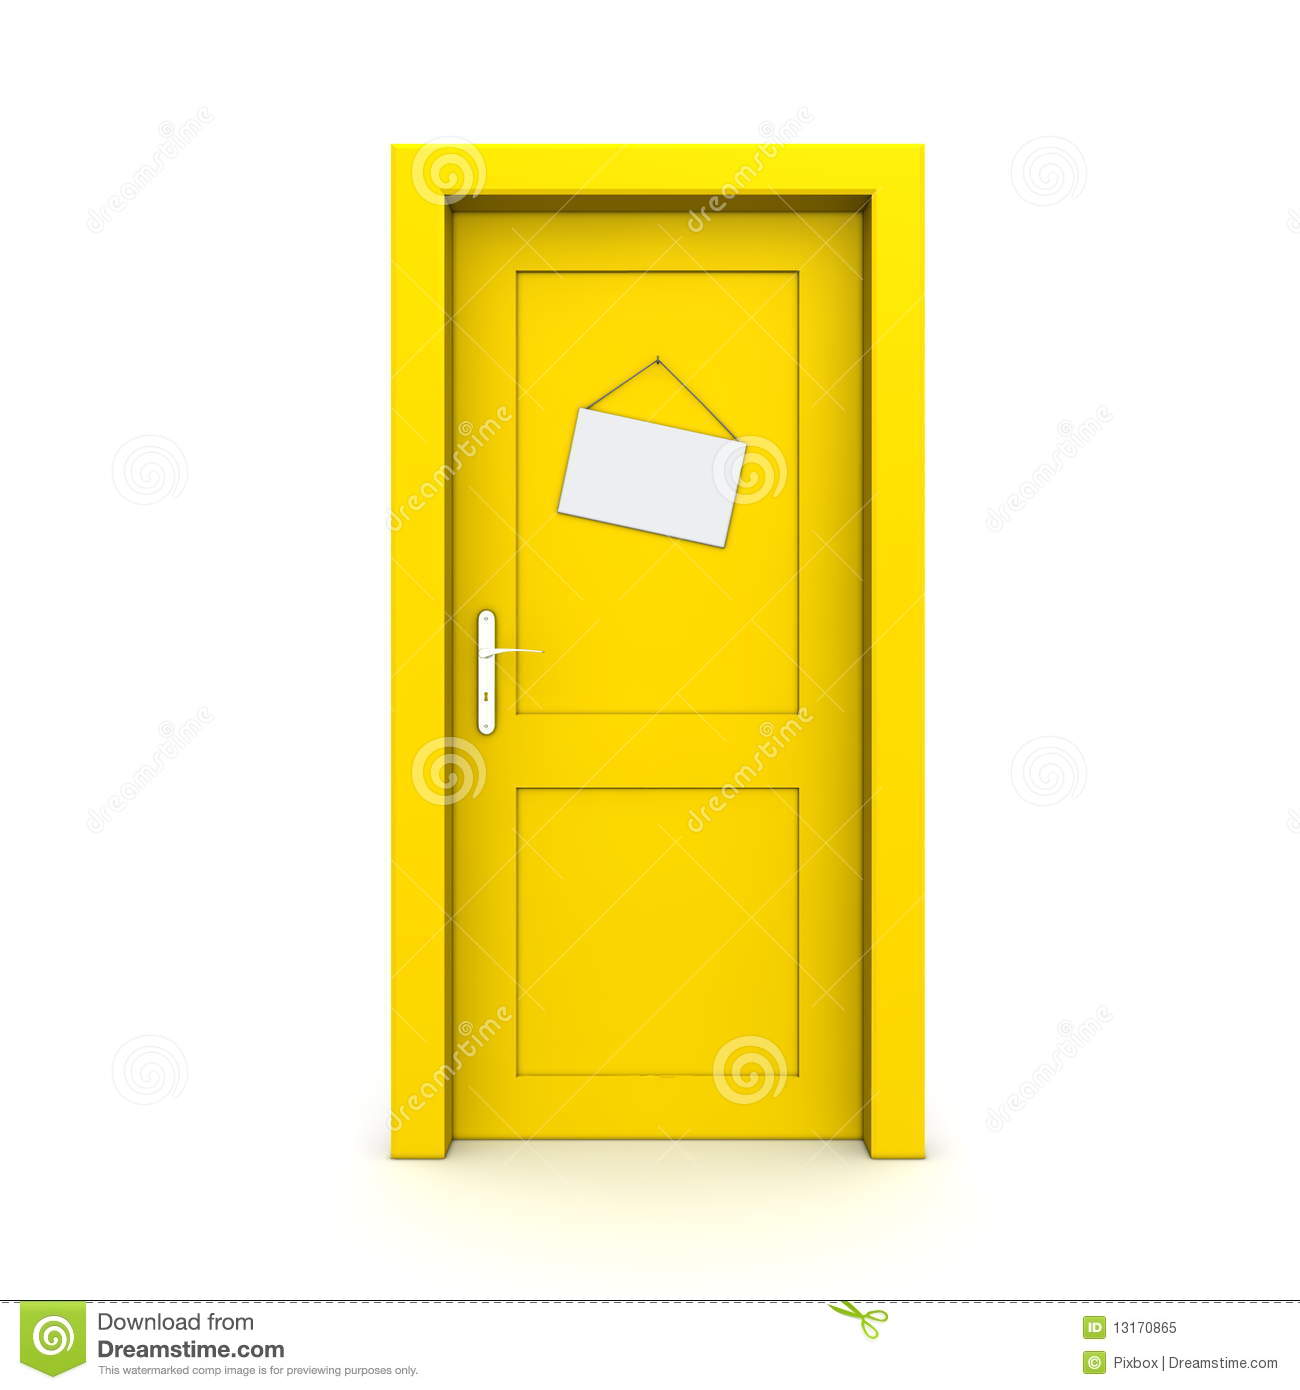 Clipart Info  sc 1 st  Clipart Panda & Closed Yellow Door With Dummy | Clipart Panda - Free Clipart Images